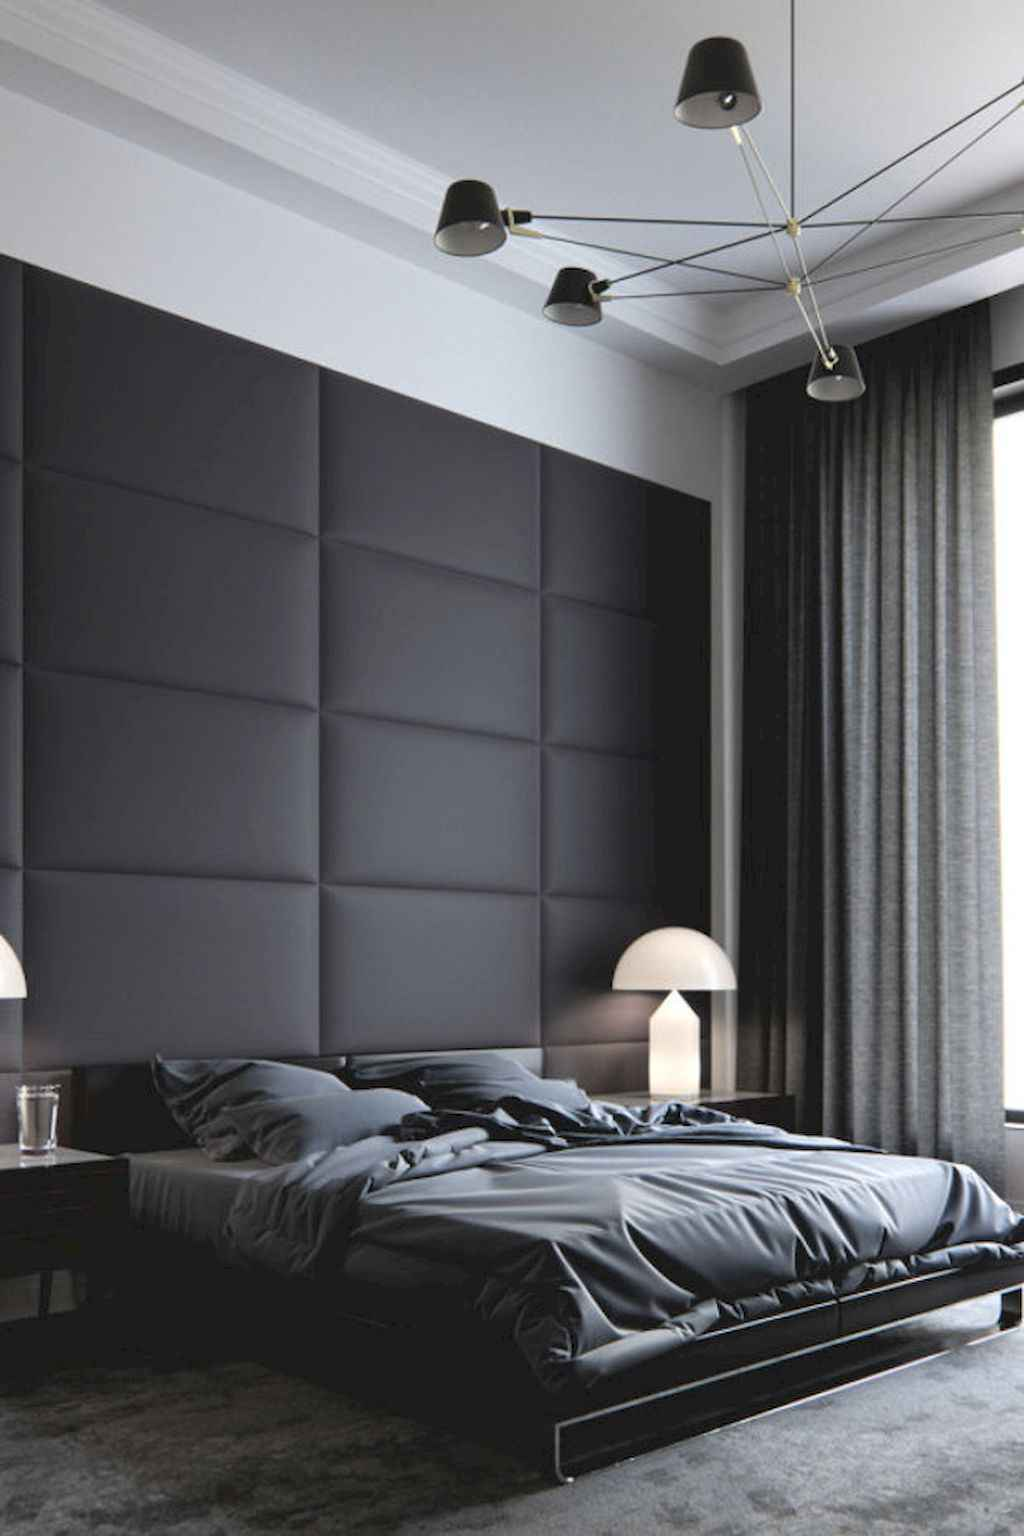 Simply bedroom decoration ideas (6)